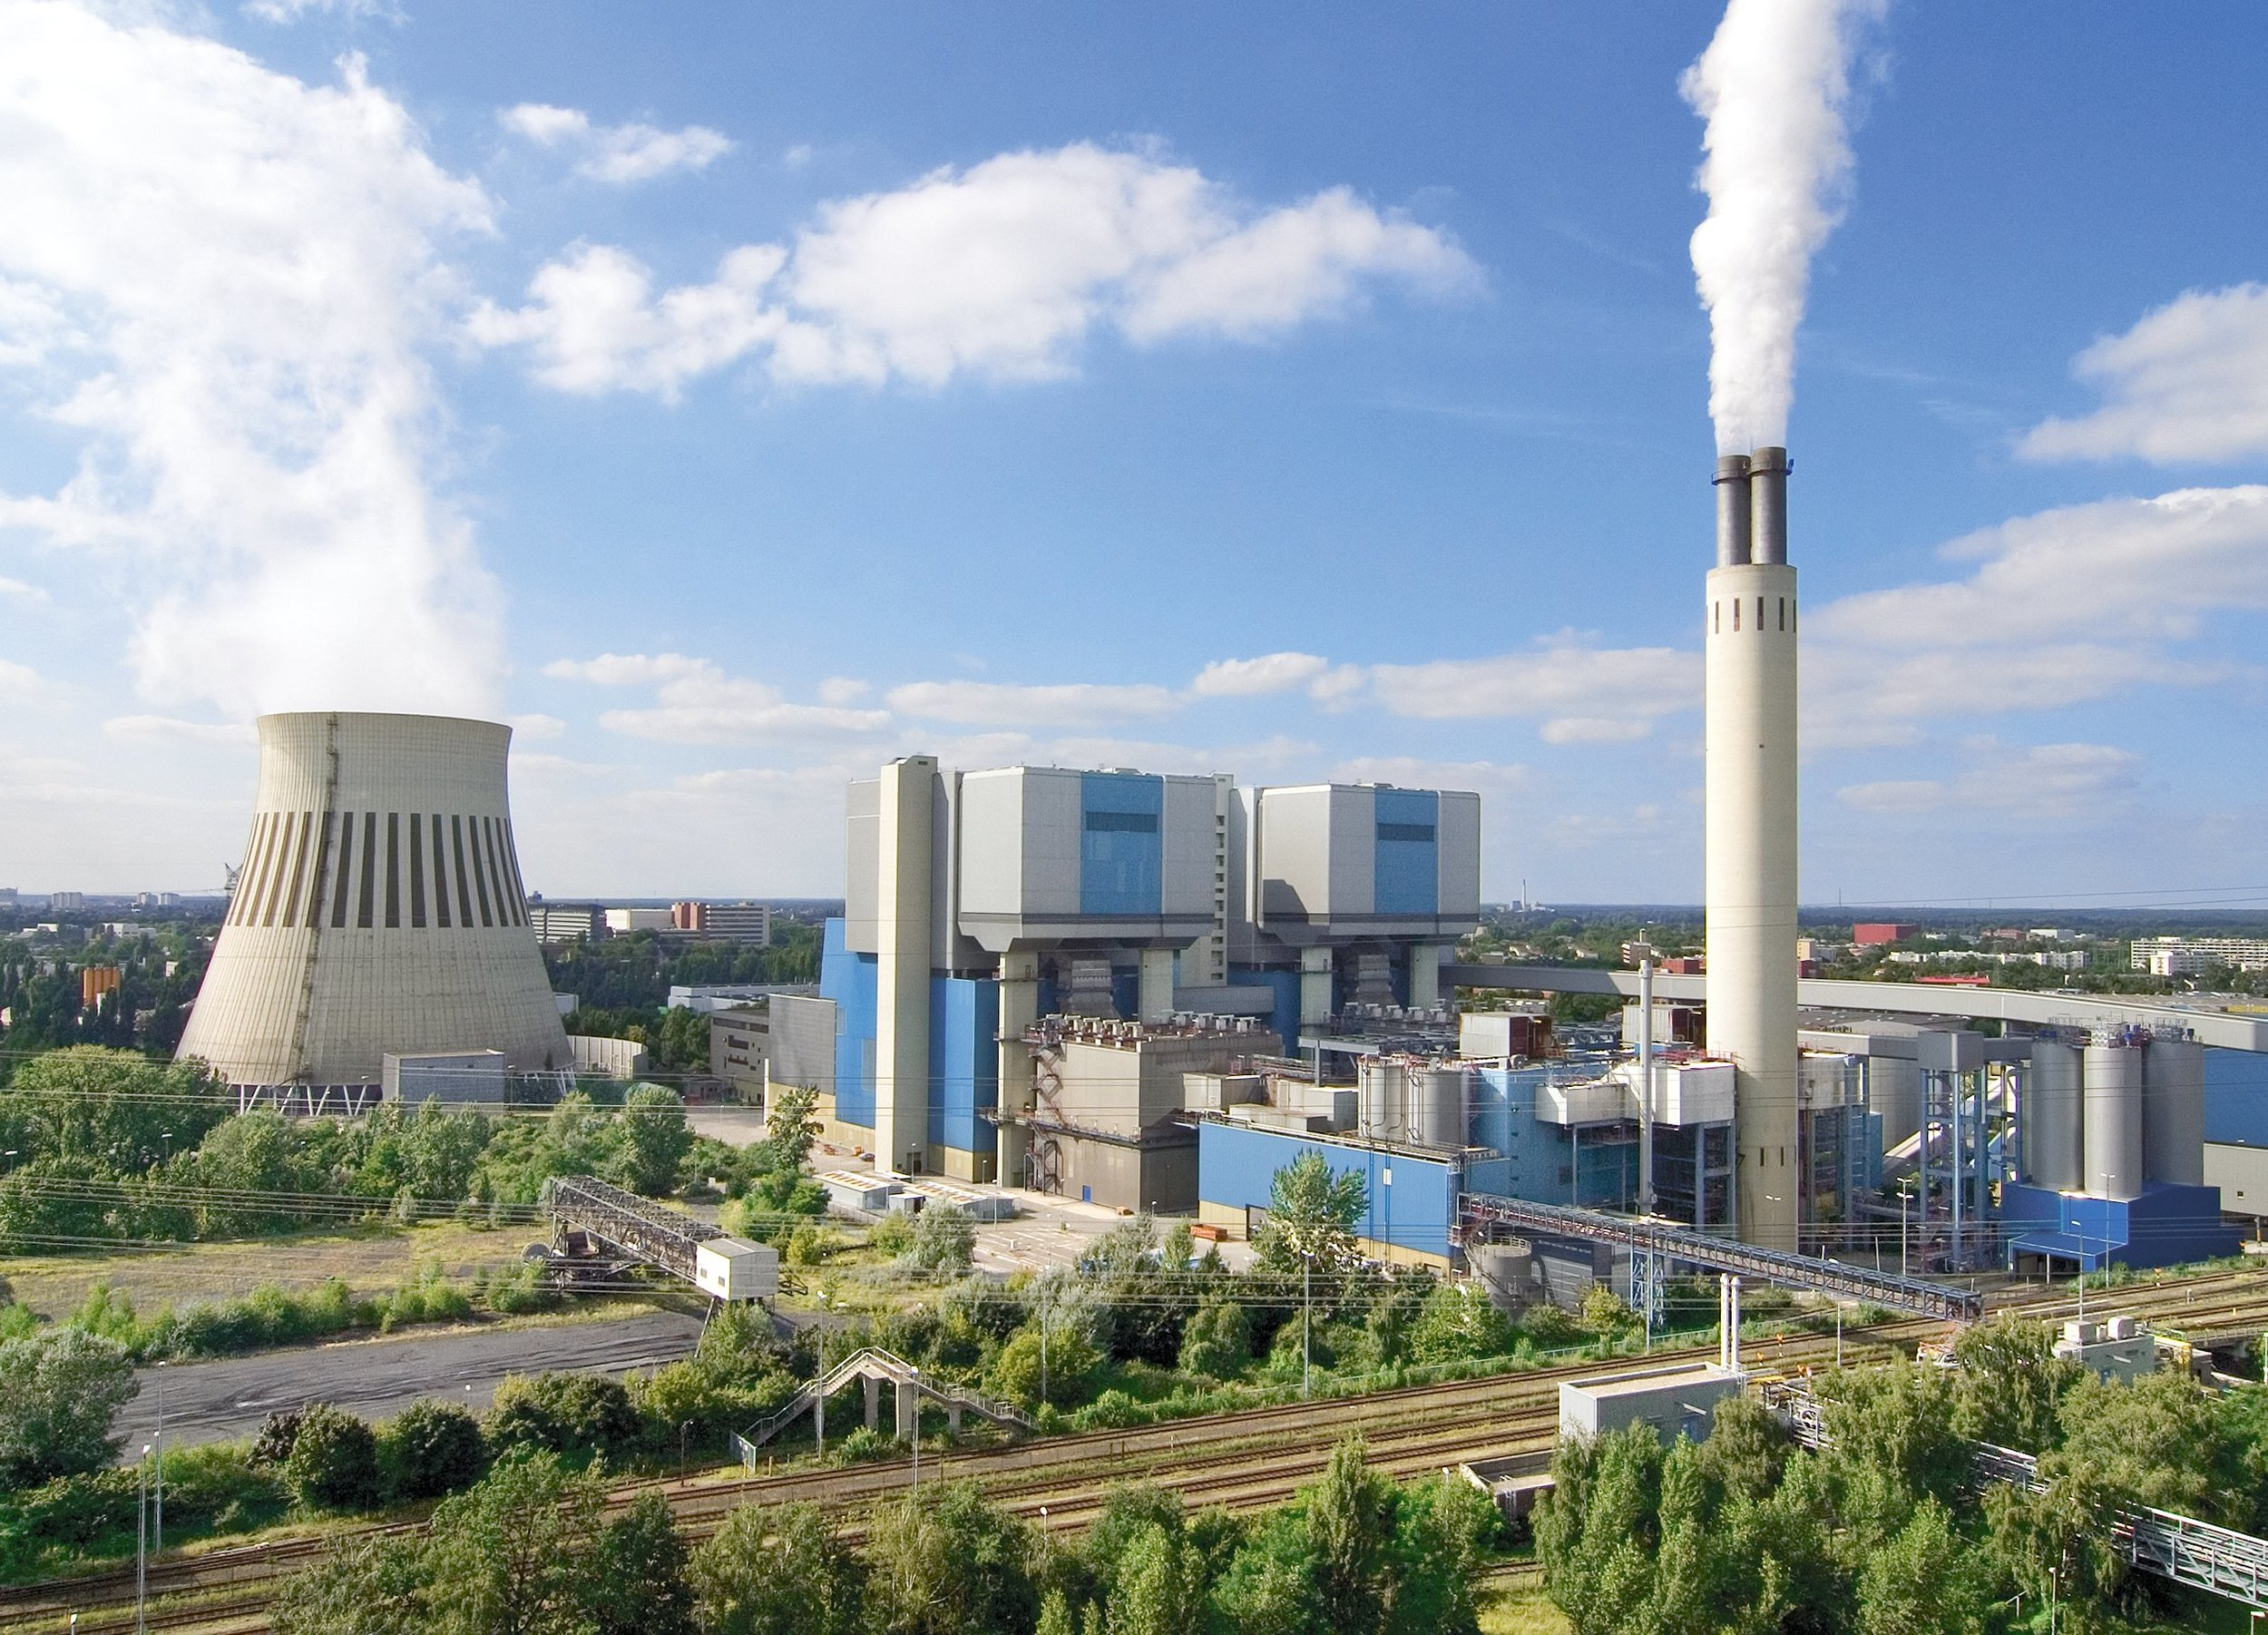 Vattenfall's Reuter West power plant burns hard coal to provide heat and power in Germany. Coal generation makes up the largest share Vattenfall's heat and power assets.